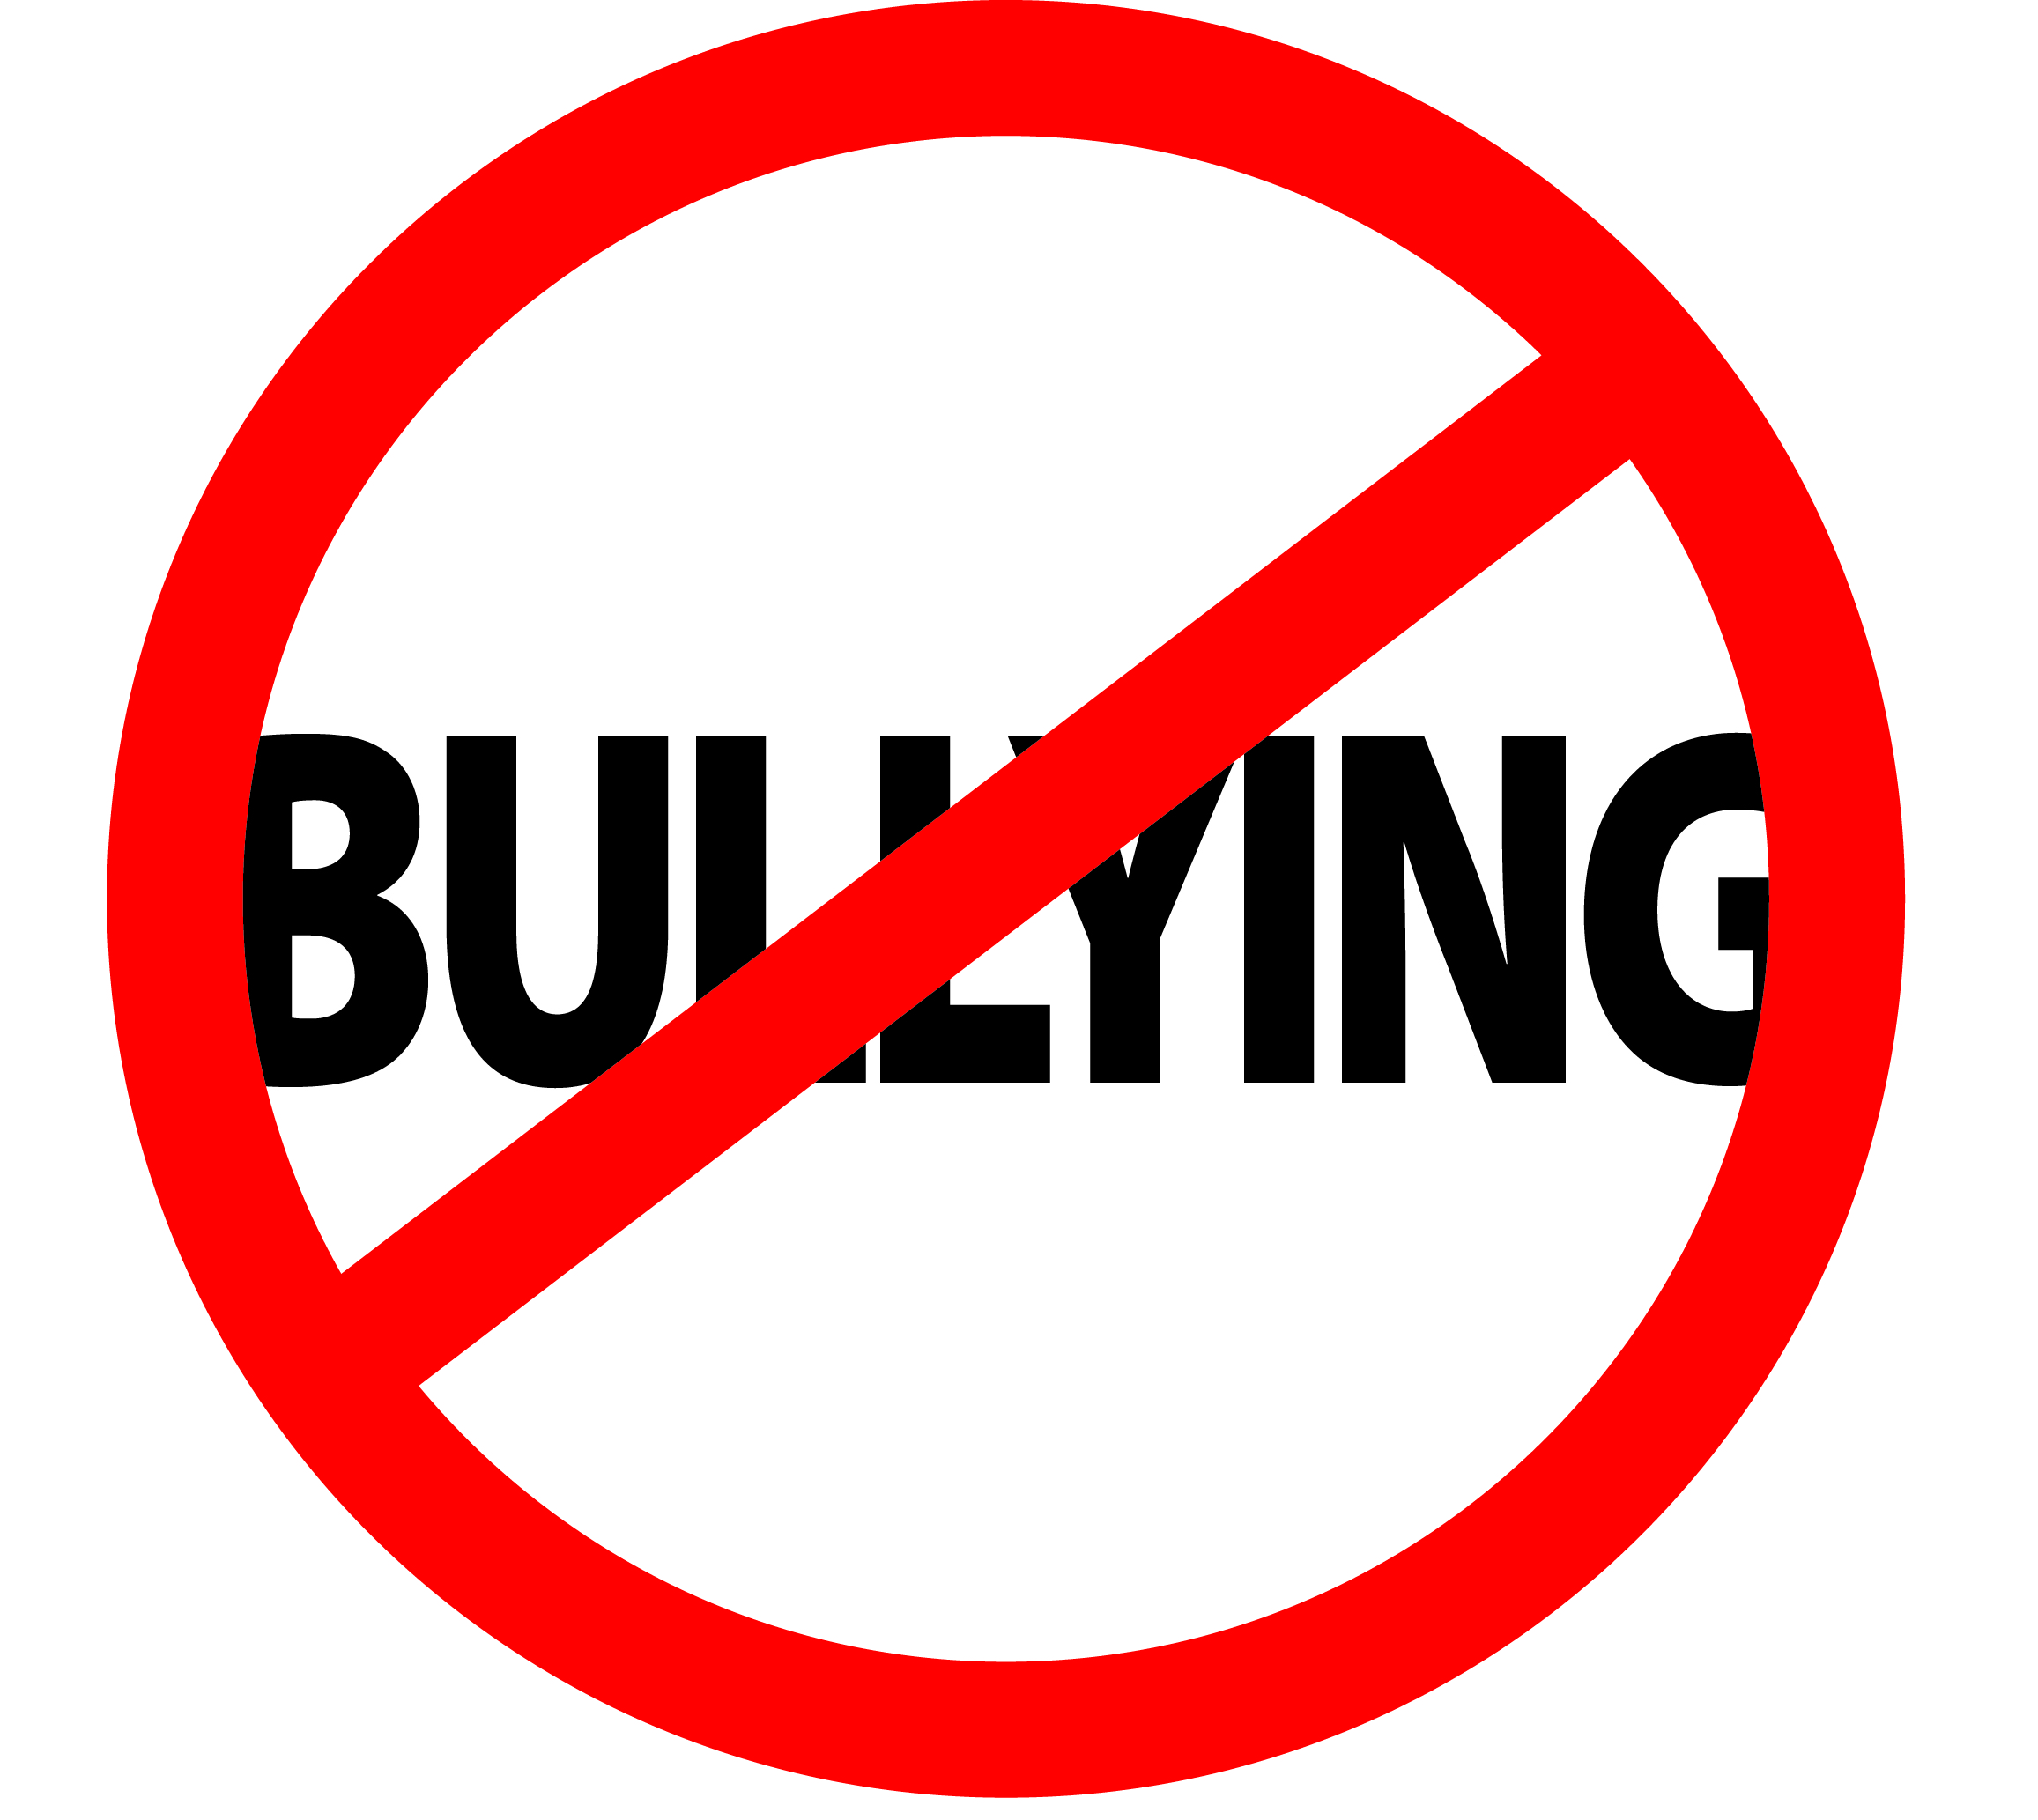 bullying prevention The latest tweets from bullying prevention (@olweus) best known, evidence-based bullying program olweus is making school a safer and more positive place for students to learn and develop center city, mn.